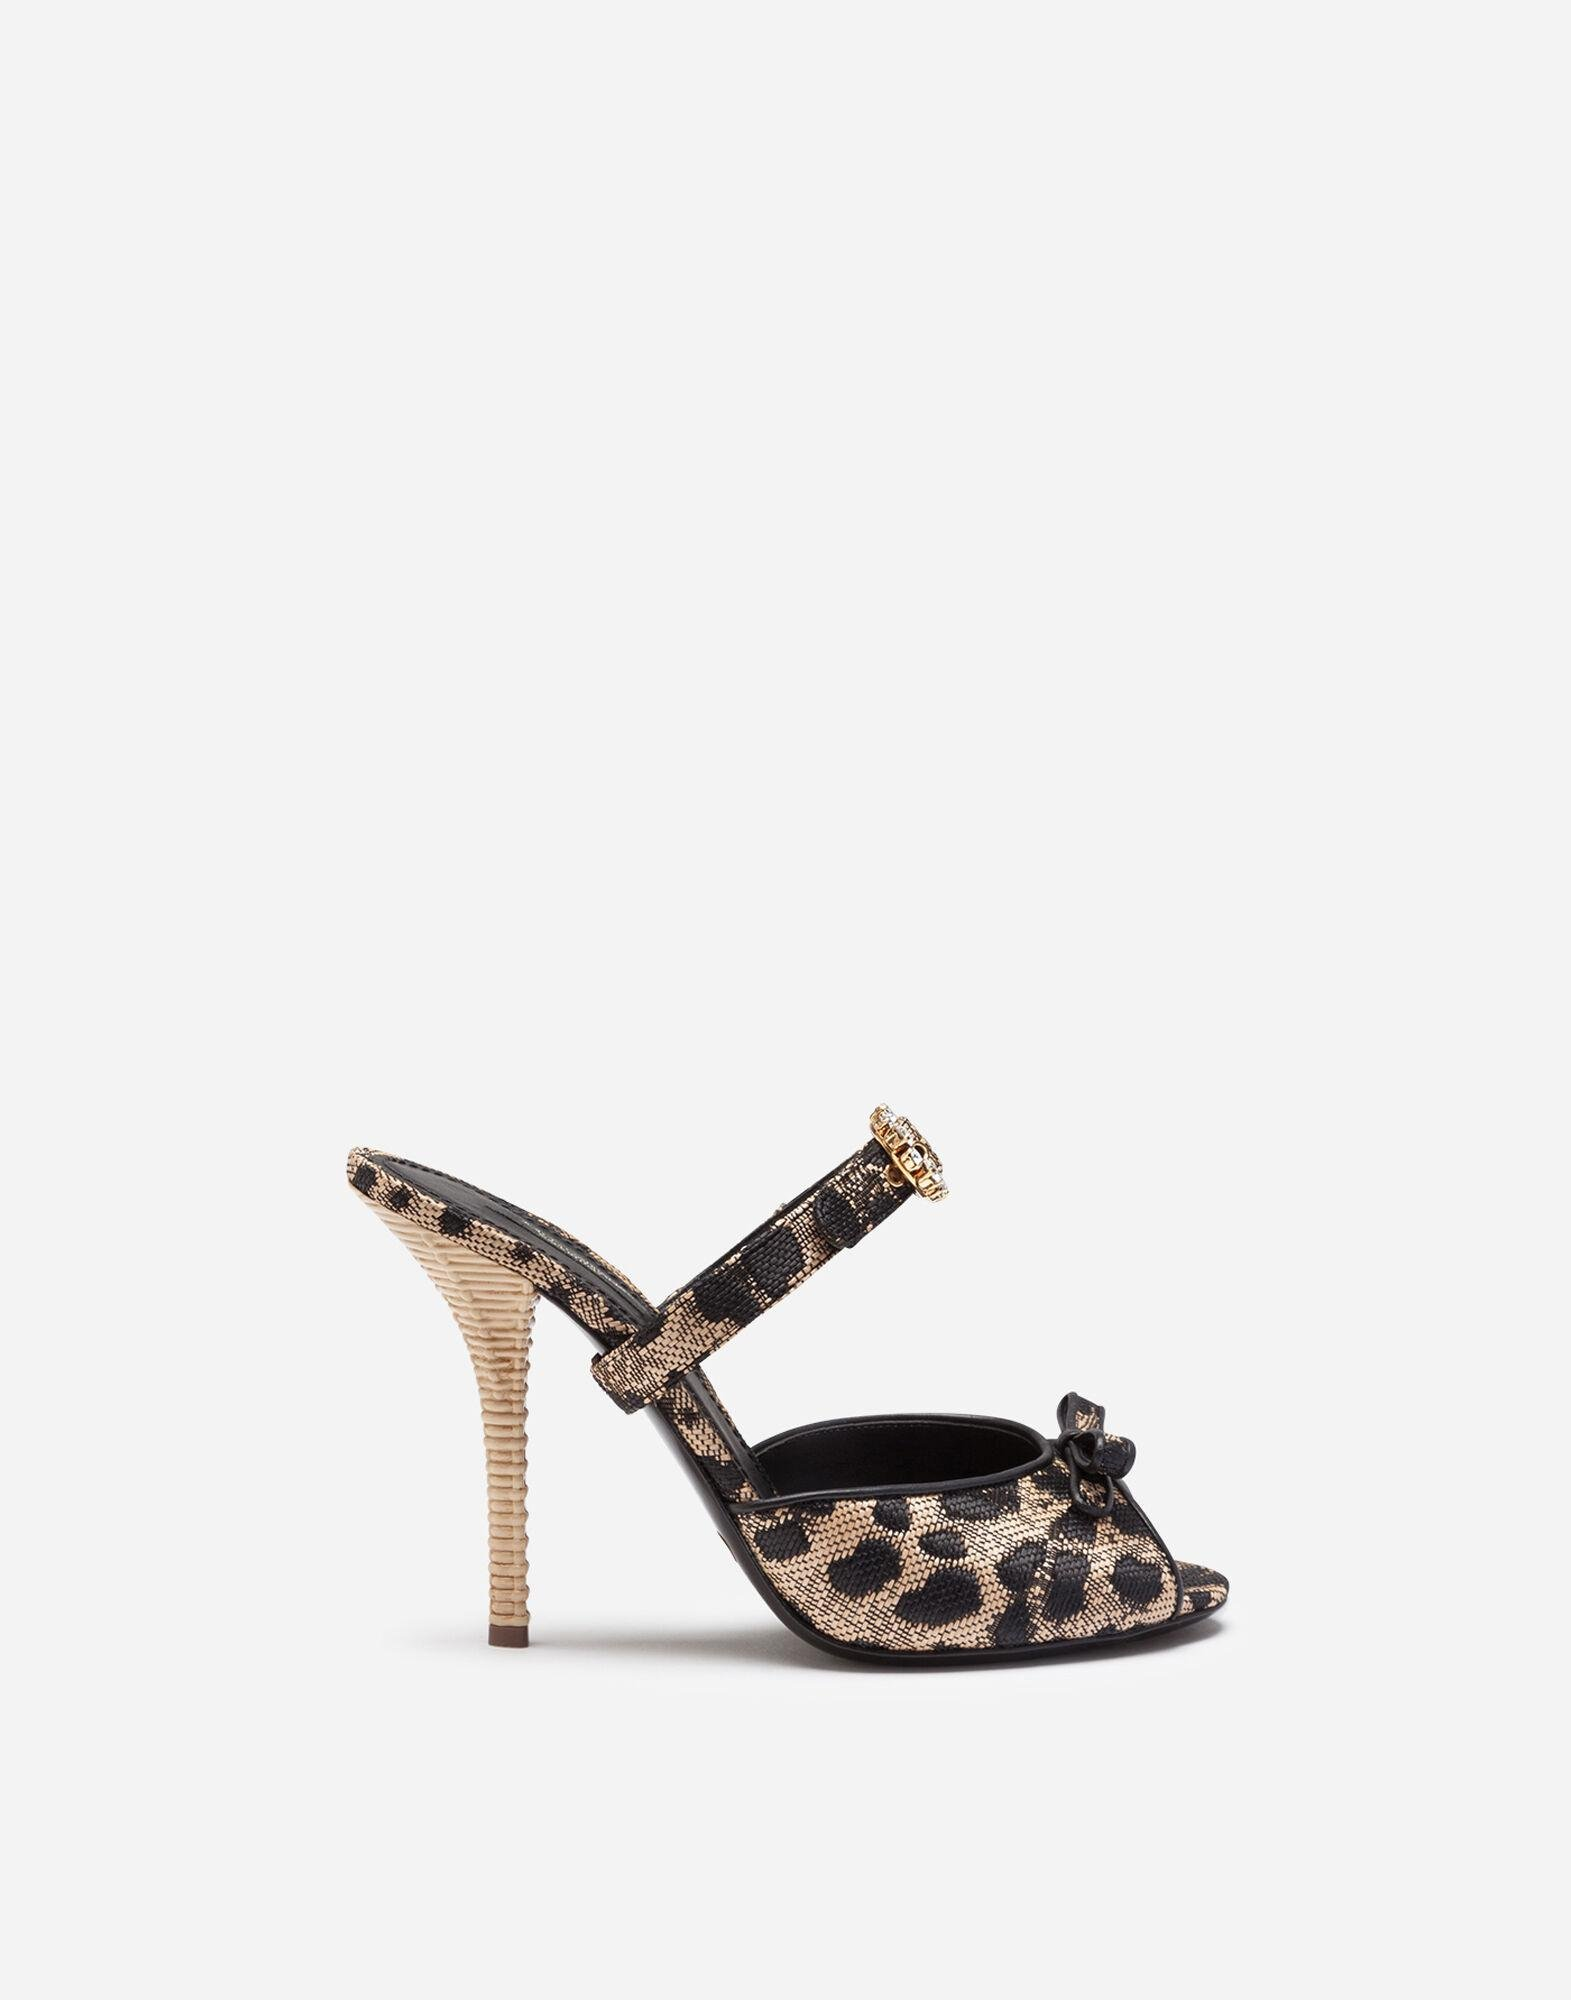 Mules in silk jacquard with leopard print and bejeweled buckle